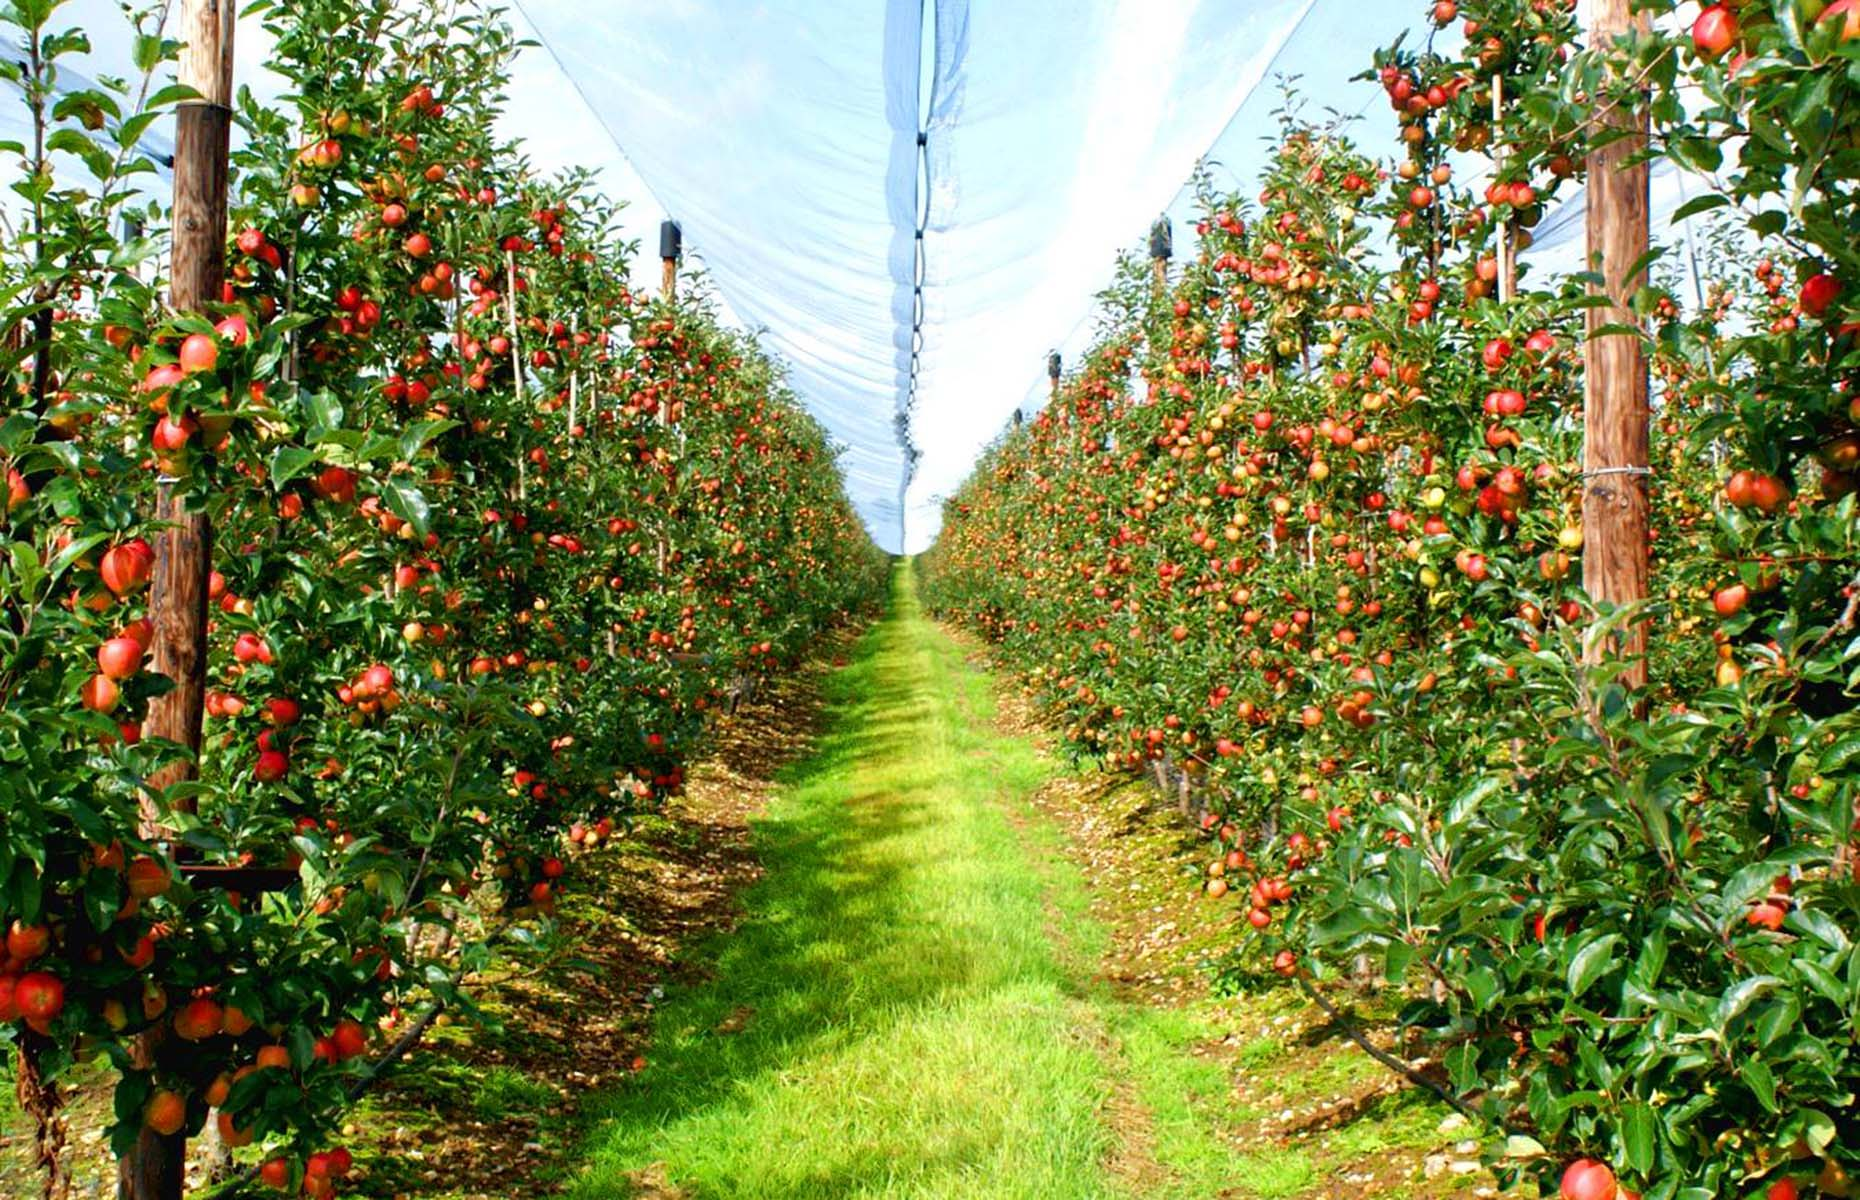 Apple trees in an orchard in Boxford Farms (Image: Boxford Farms/Facebook)